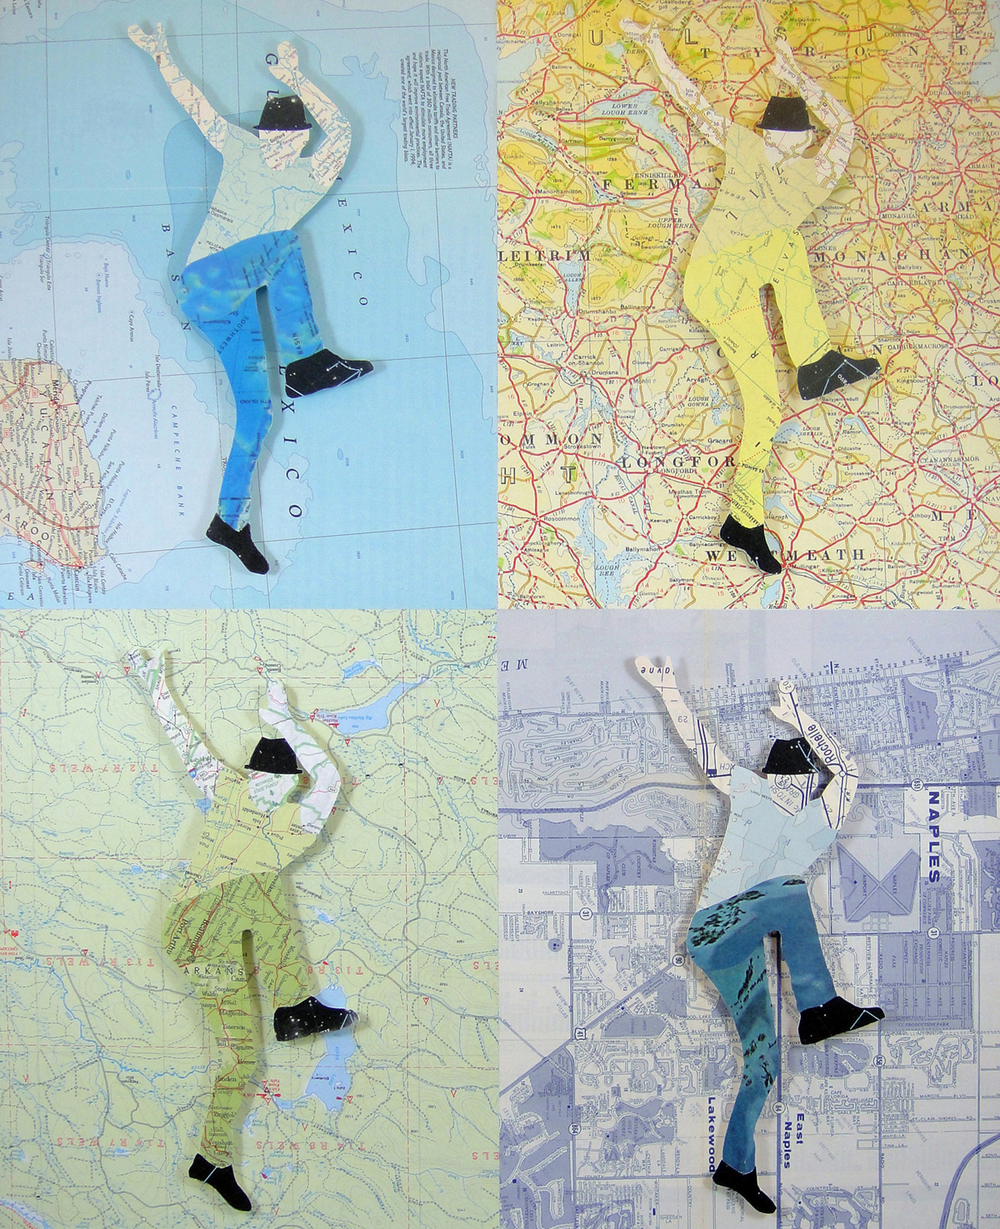 Collage using old maps: Liberty (2015)